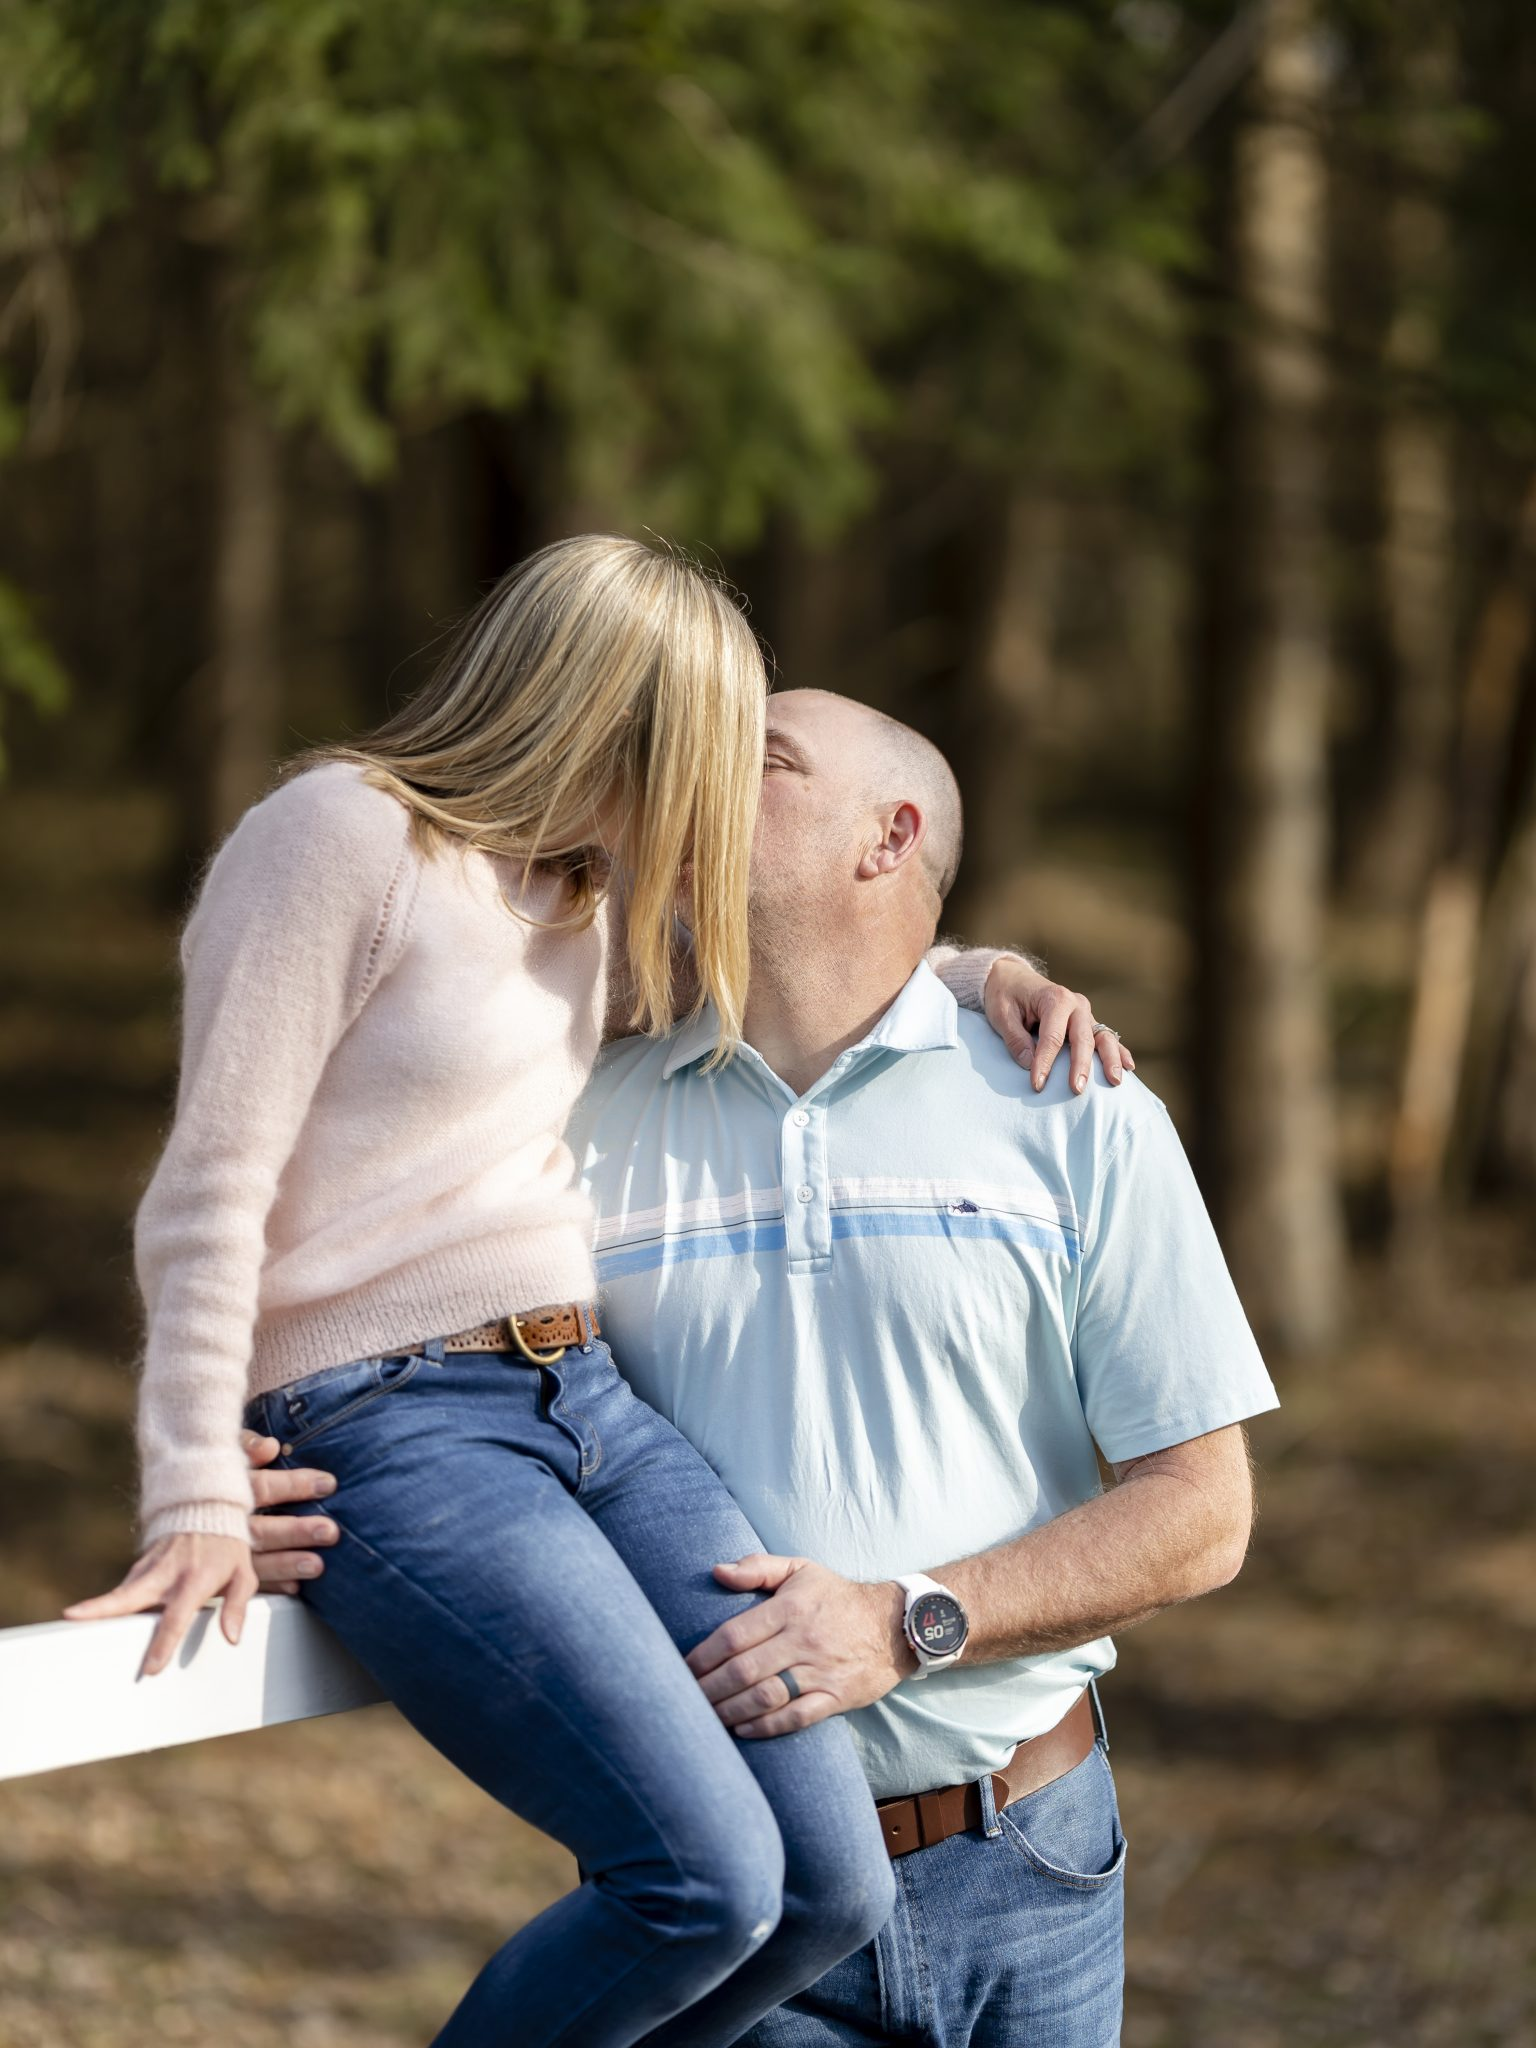 Husband and wife in pink sweater, blue polo and jeans, natural lighting, natural setting, woods, Professional portraits, couples portraiture, Keuka Lake, Fingerlakes Region, Vacation photos, Fingerlakes vacation, Penn Yan, New York, family photoshoot, family pictures, Husband and wife pictures holding hands, sitting on a fence, kissing, happiness, love